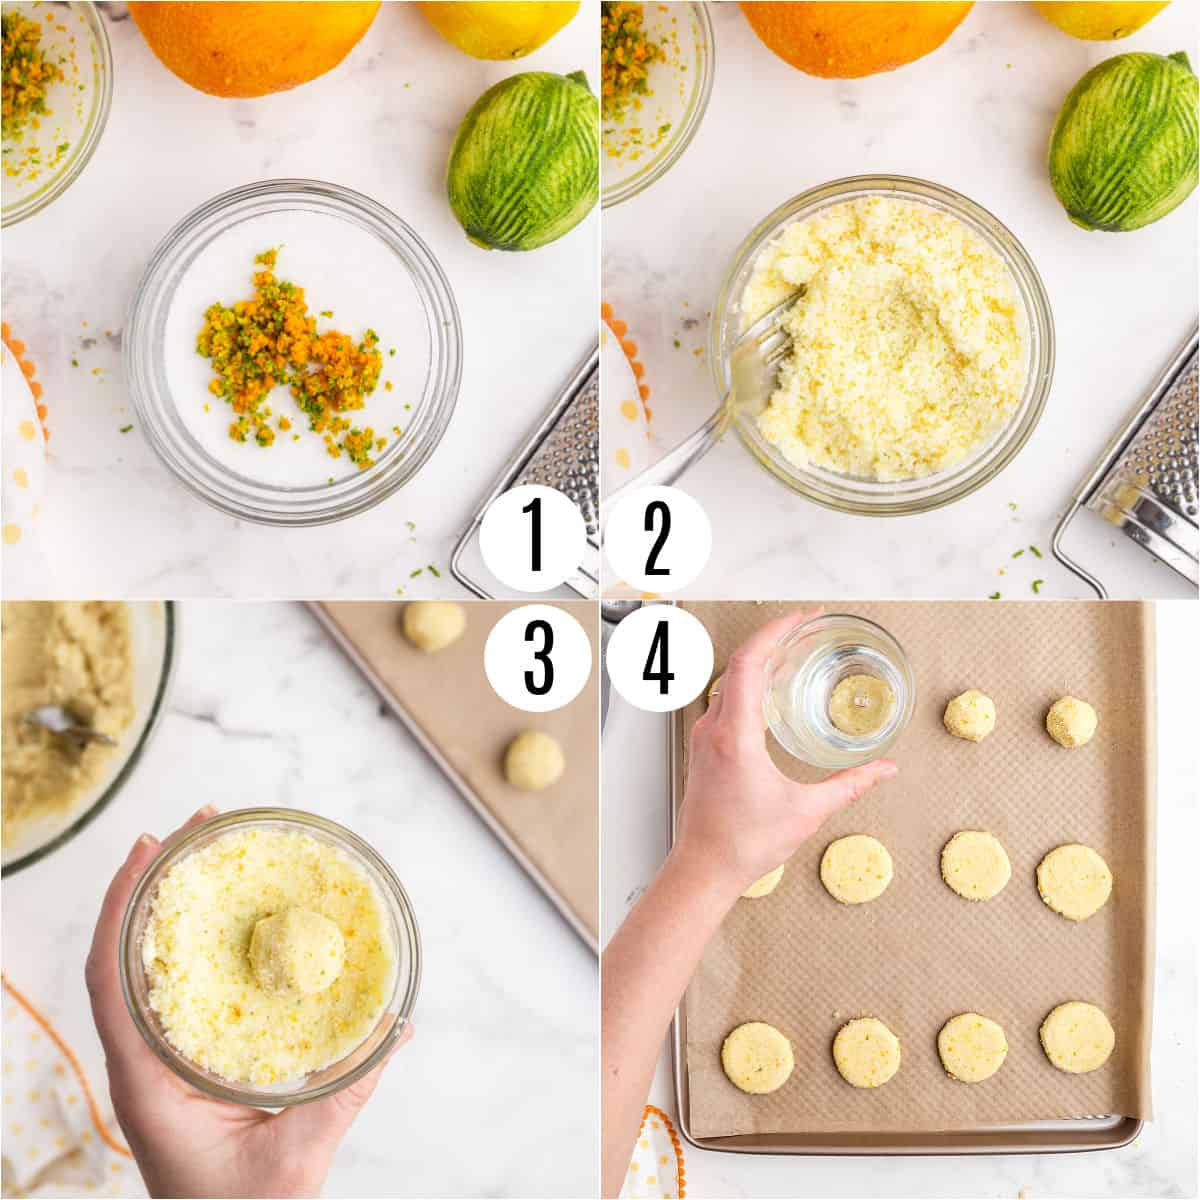 Step by step photos showing how to roll citrus cookies in sugar and zest before baking.